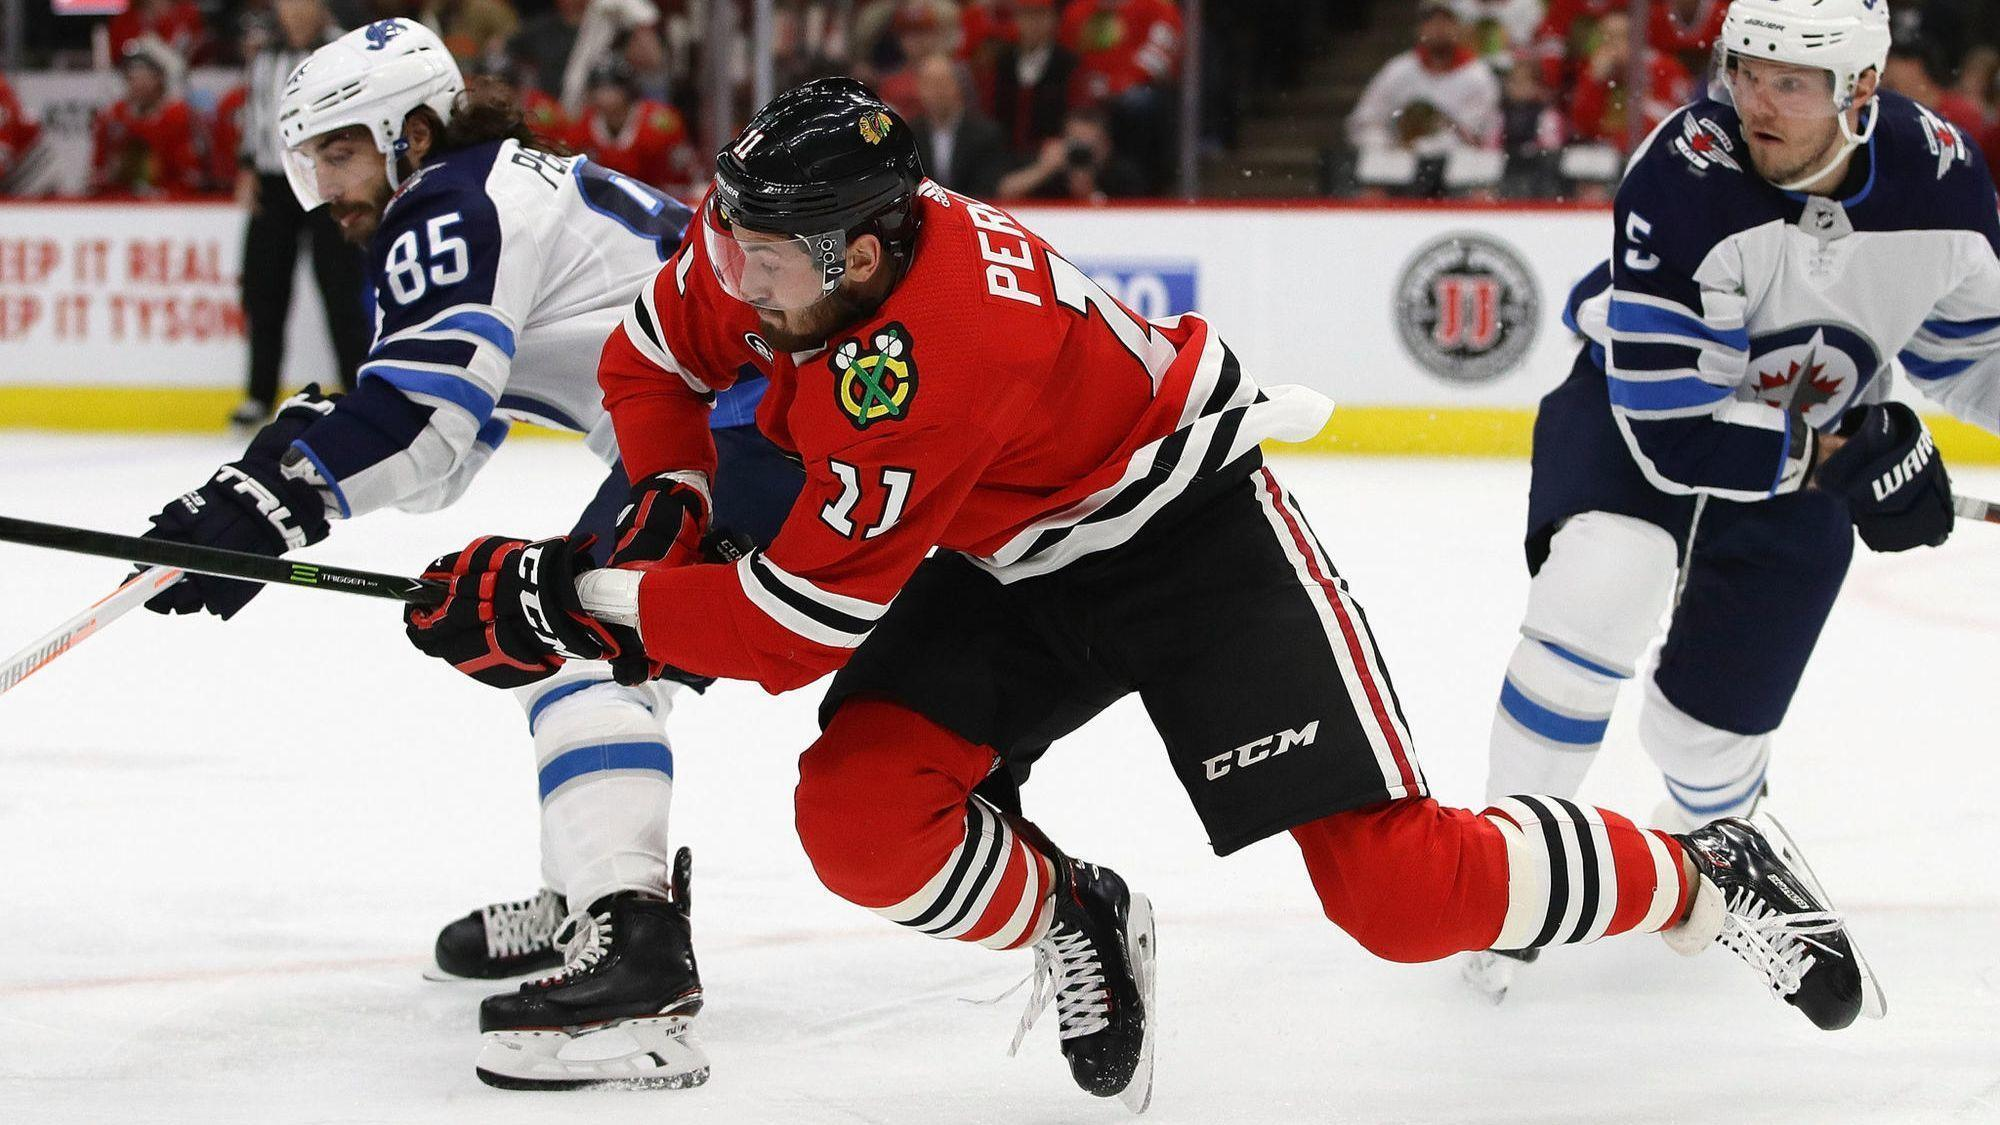 Blackhawks playoff tracker: 1 point out of a wild-card spot with 21 games to go